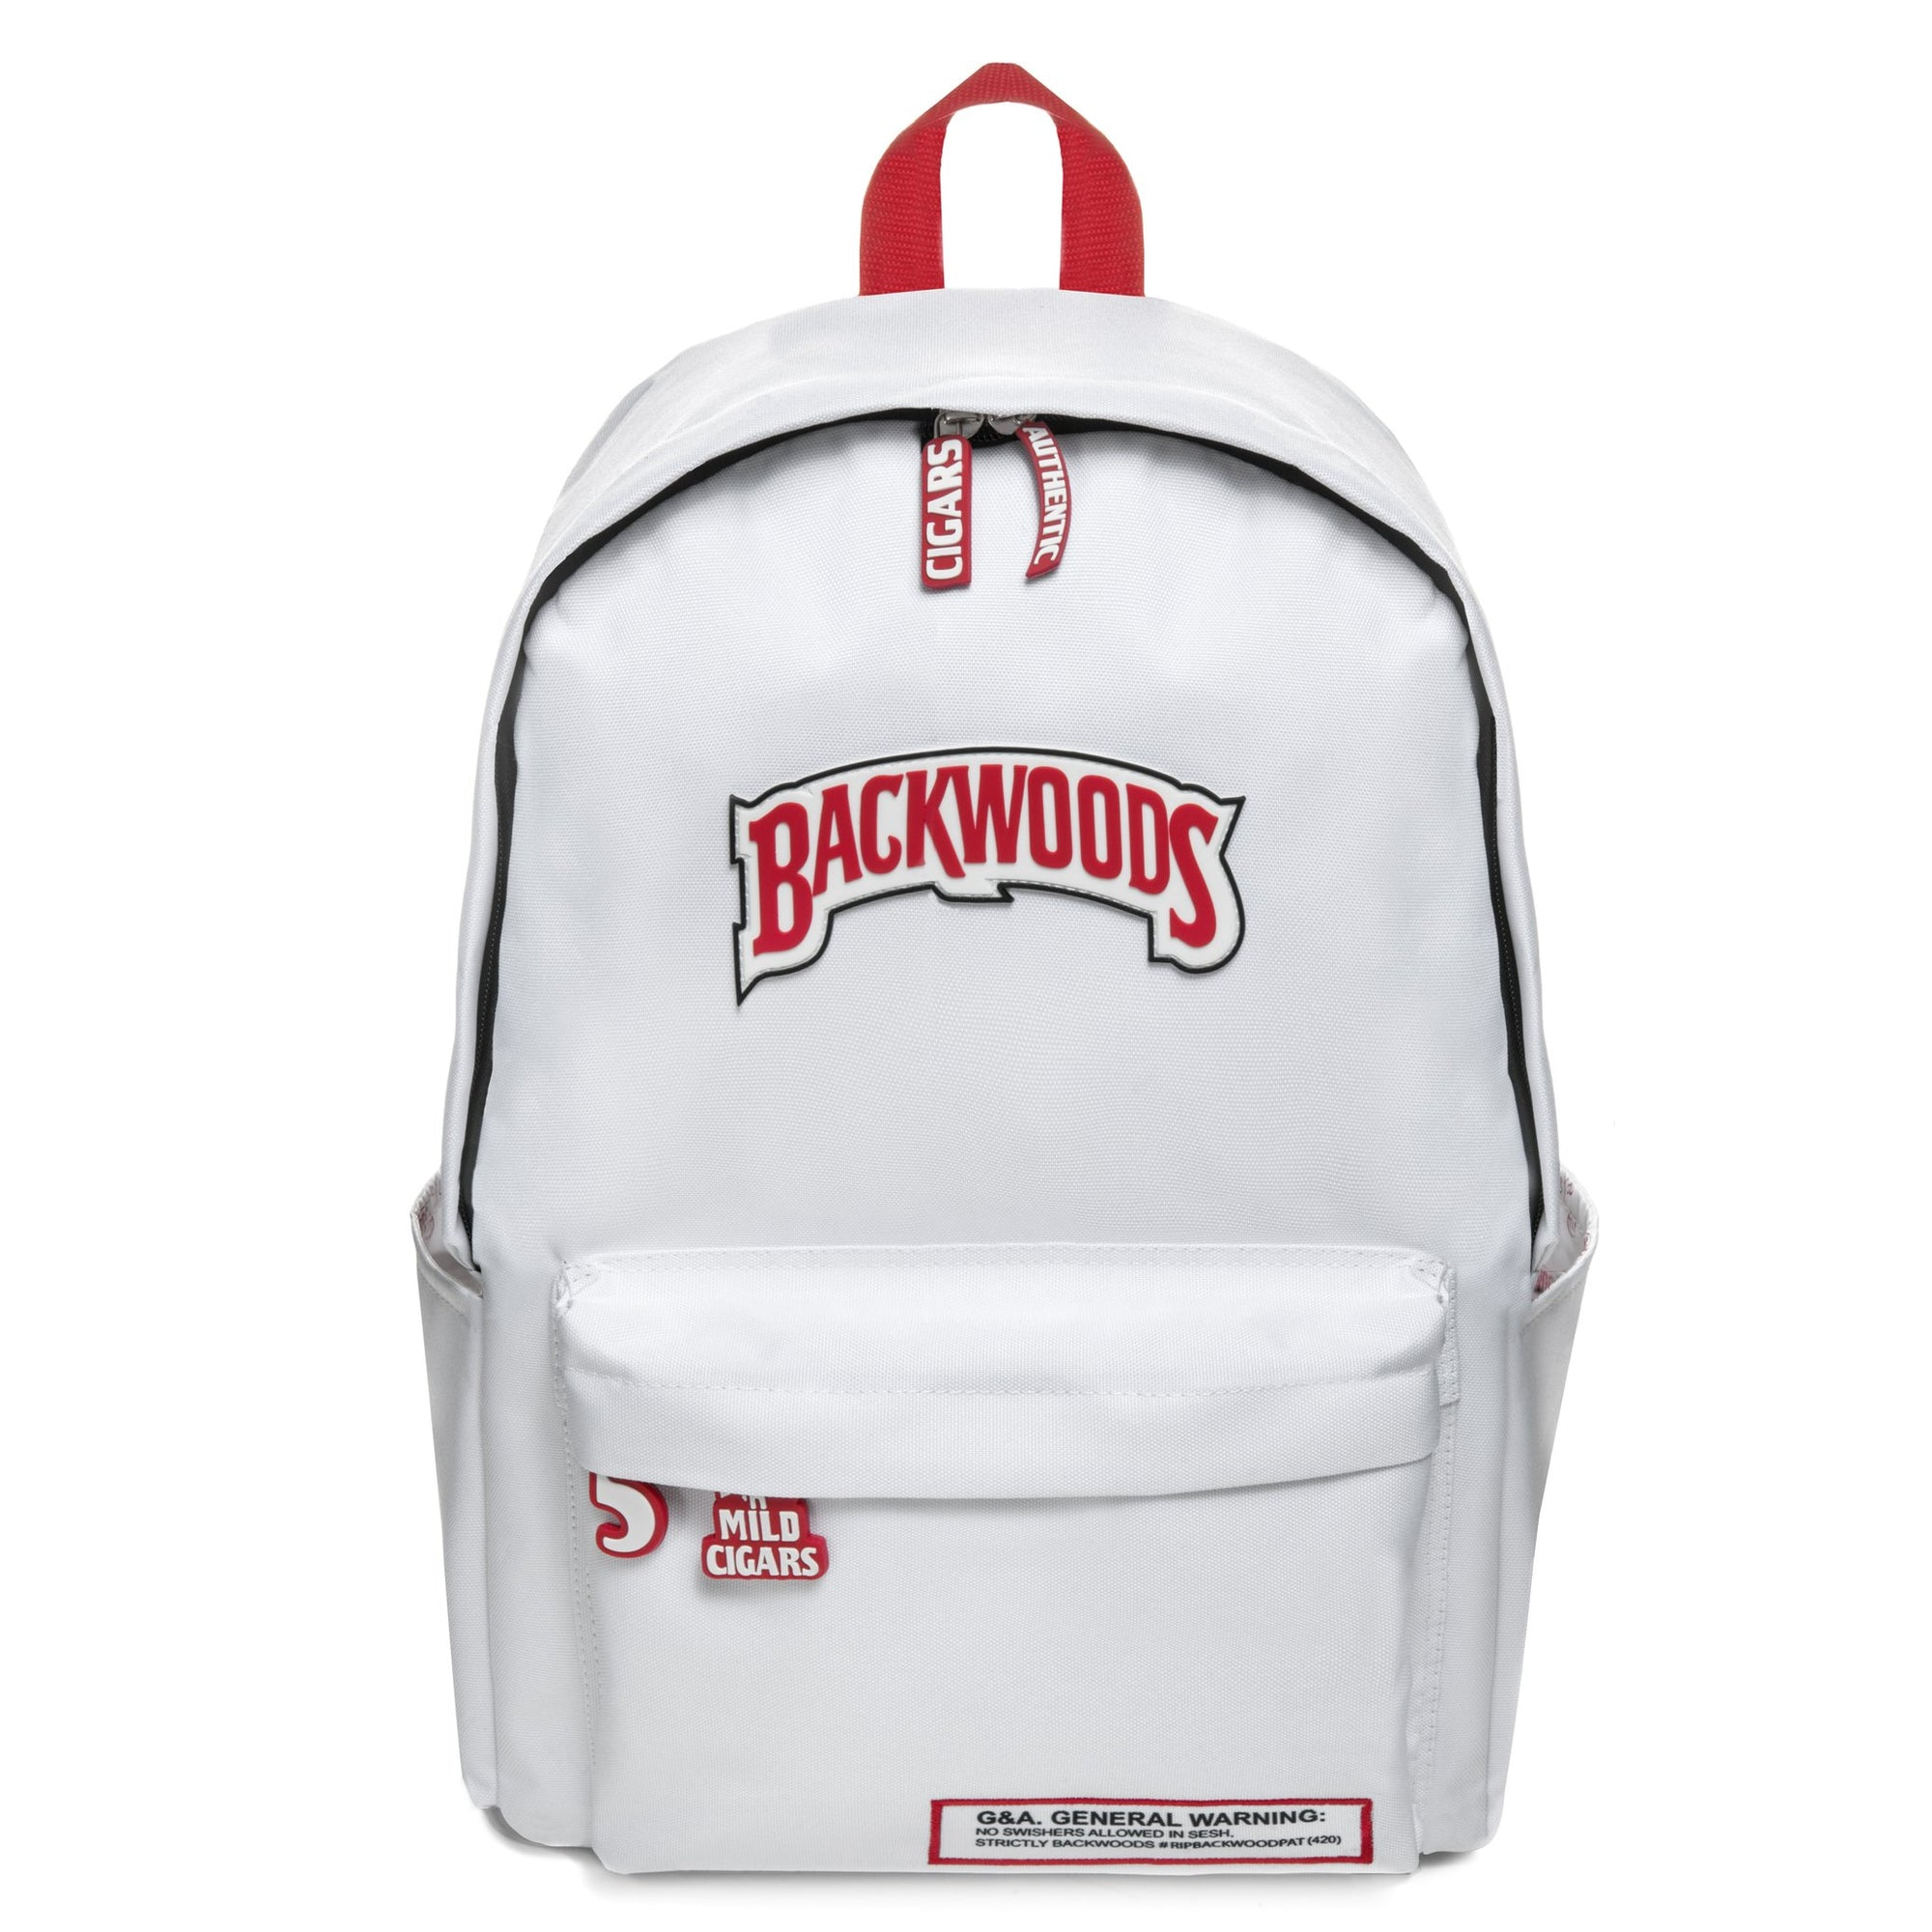 White Backwoods Backpack